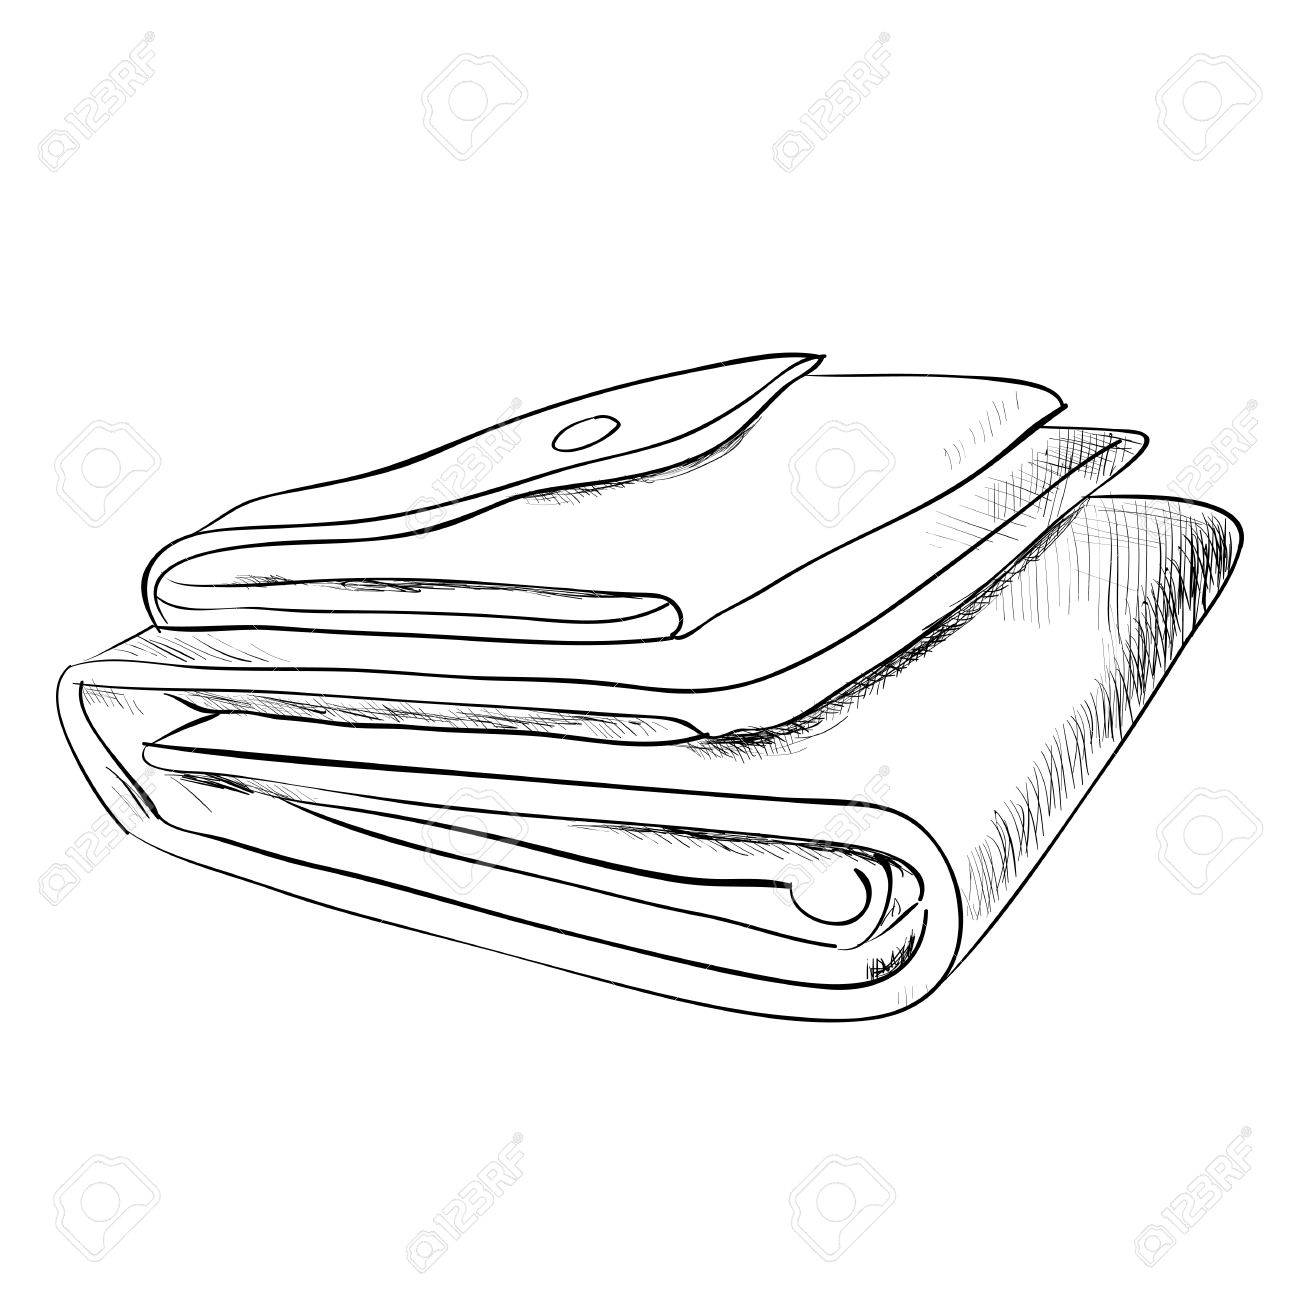 1300x1300 Vector Sketch Of Wallet. Hand Draw Illustration. Royalty Free